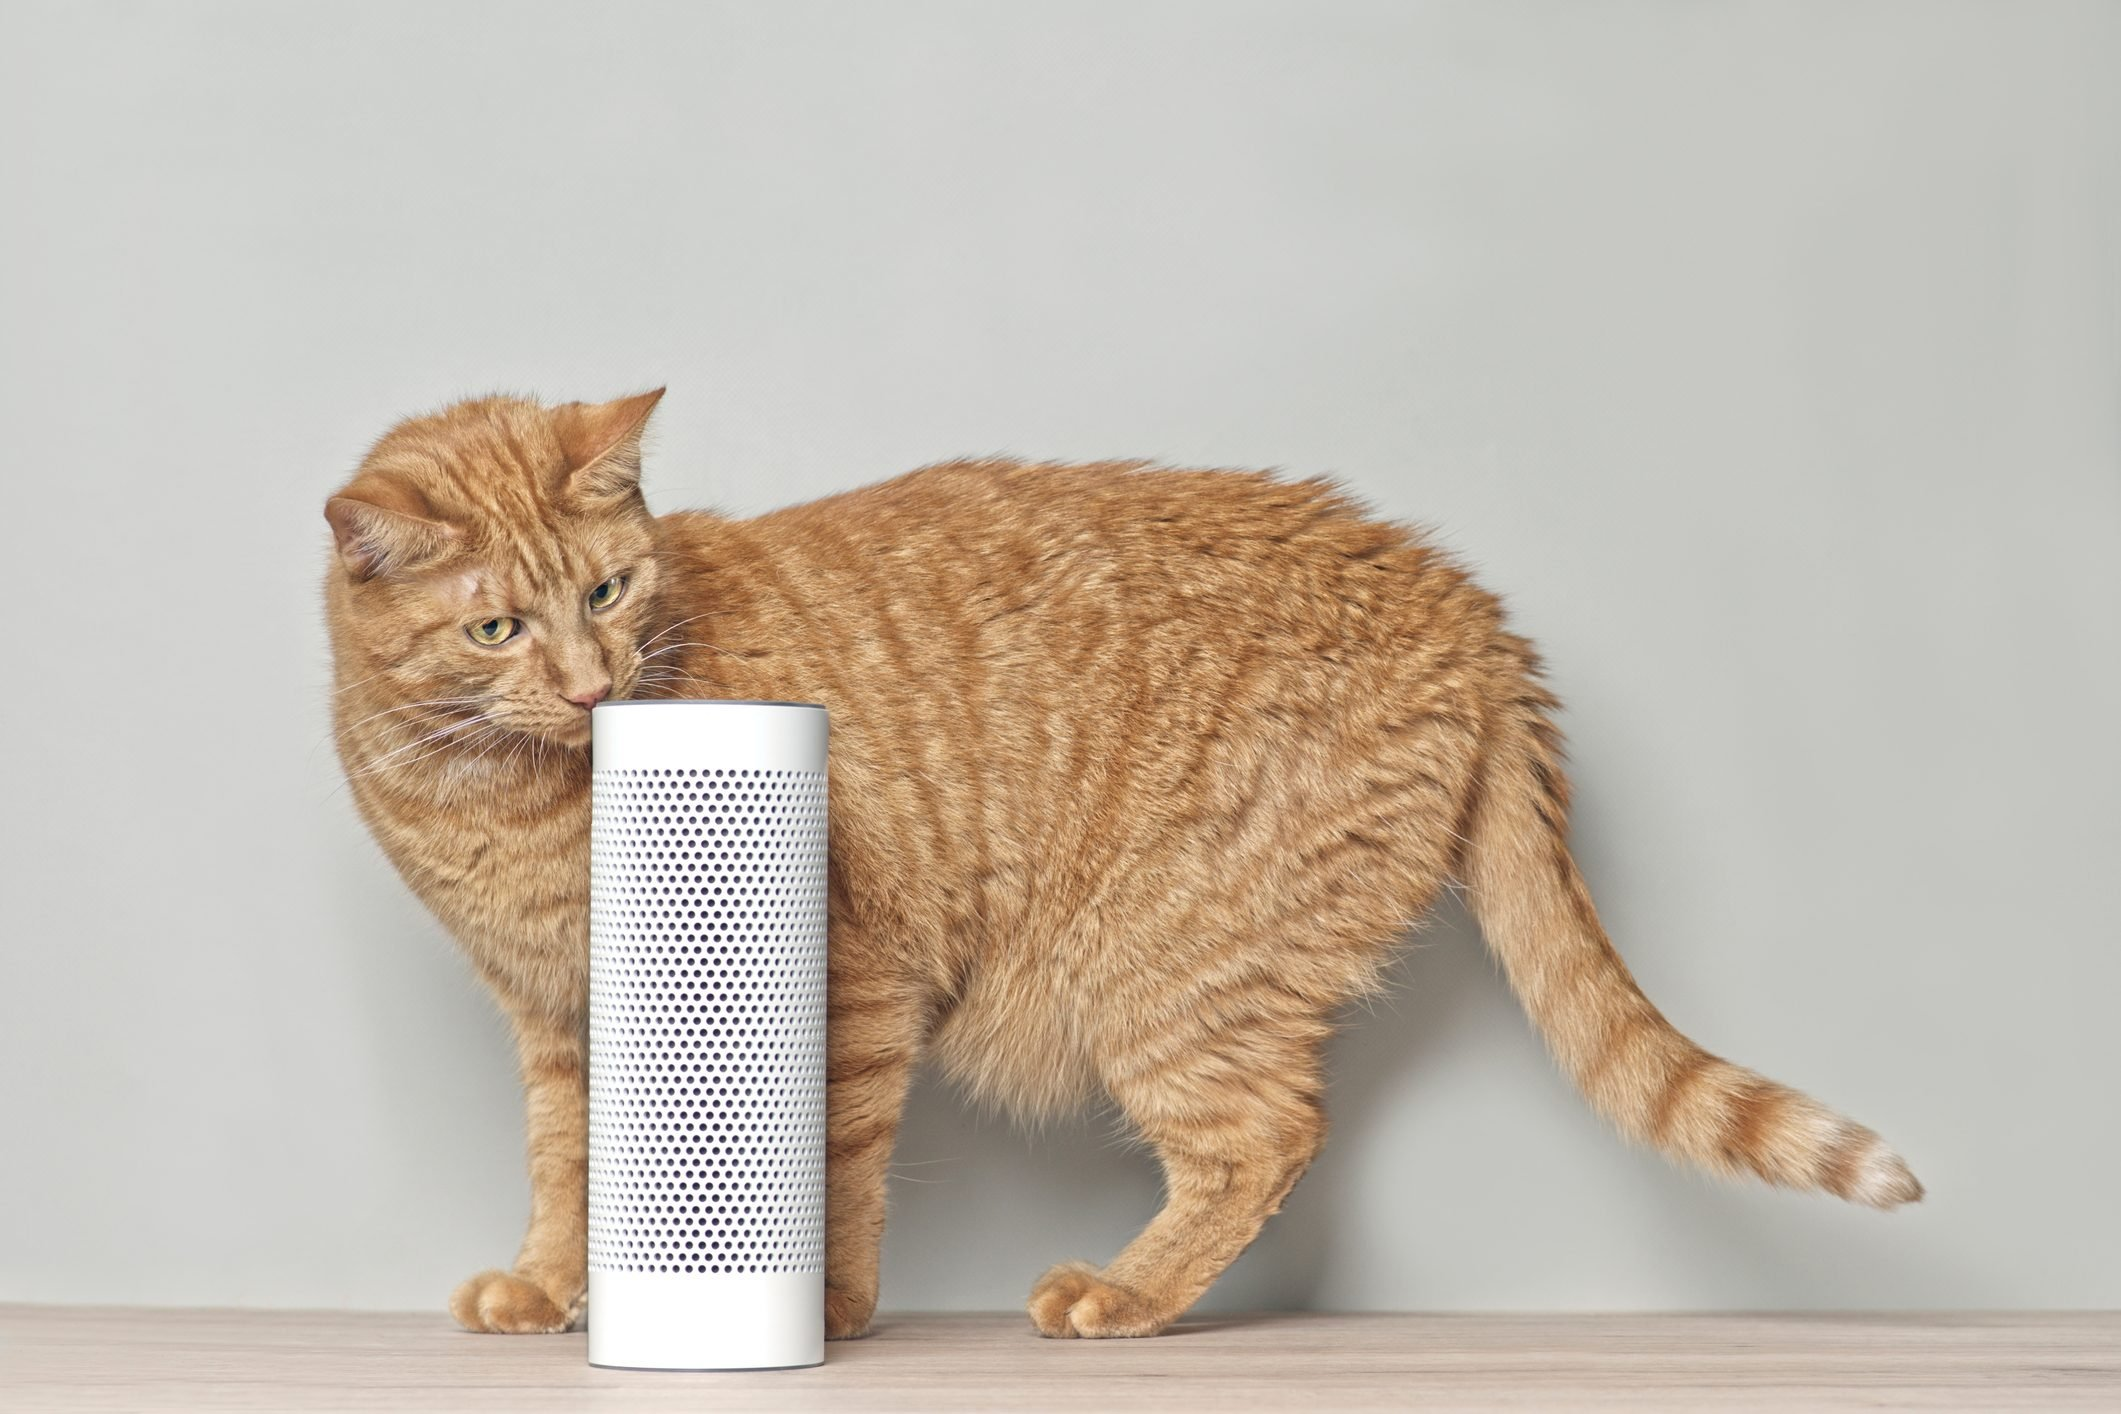 Cute Ginger Cat Looking Curious To A Voice Controlled Smart Speaker.